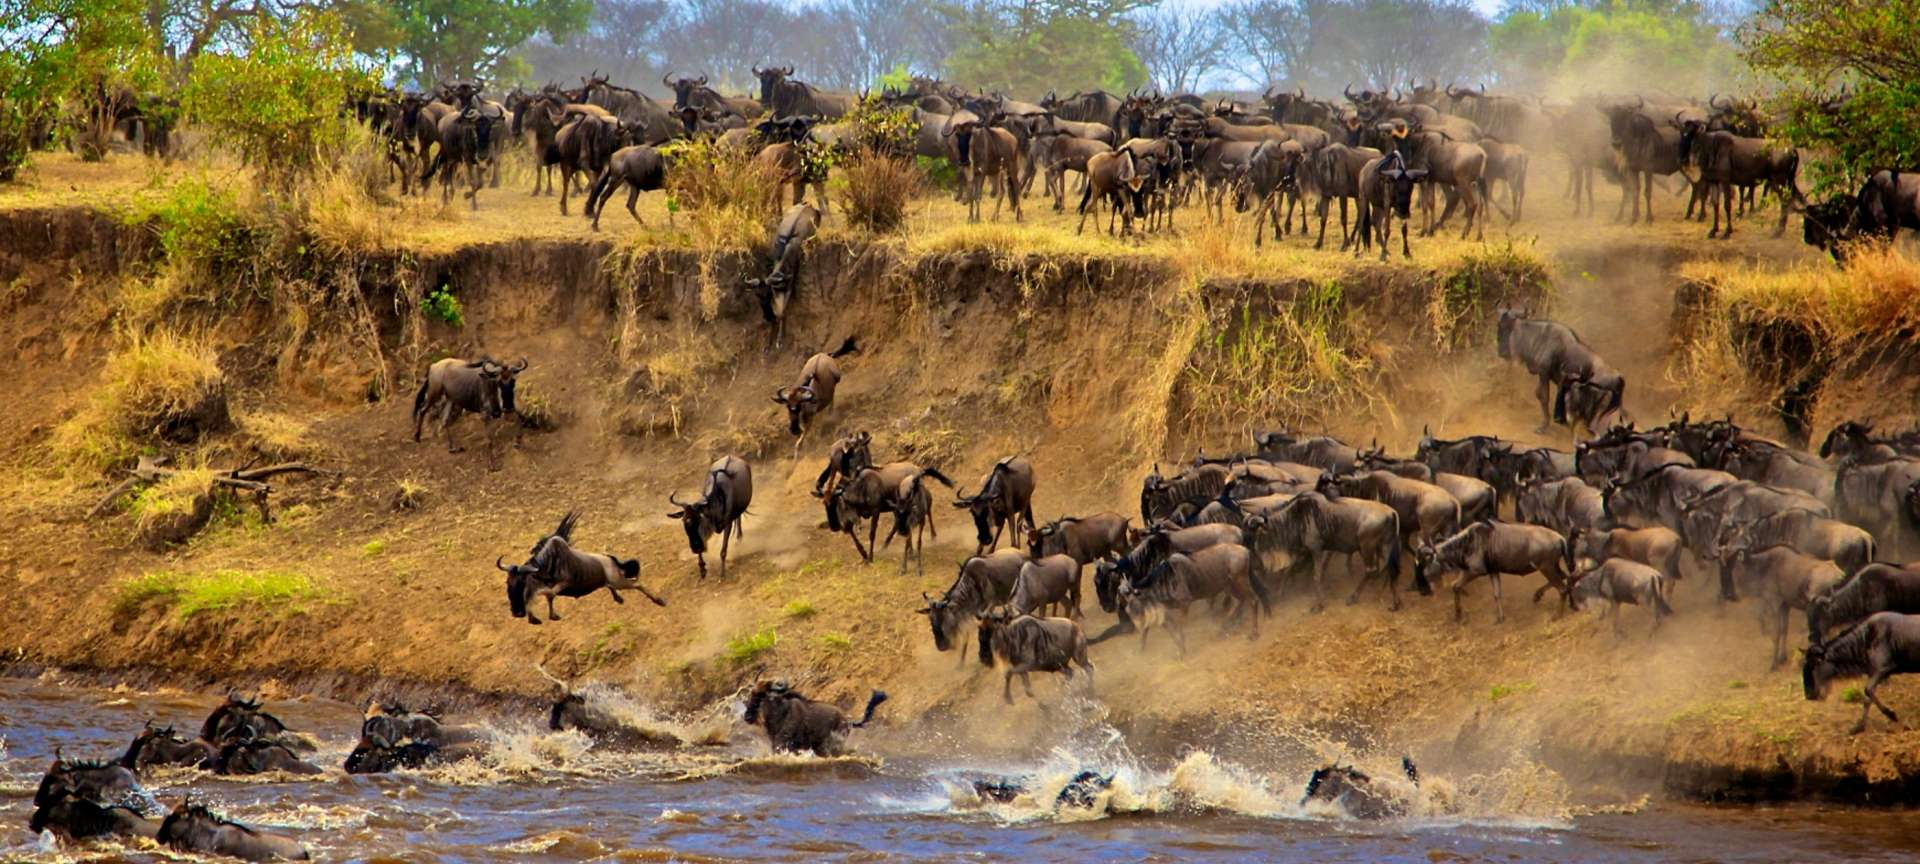 wildebeest-migration__1920x864.jpg